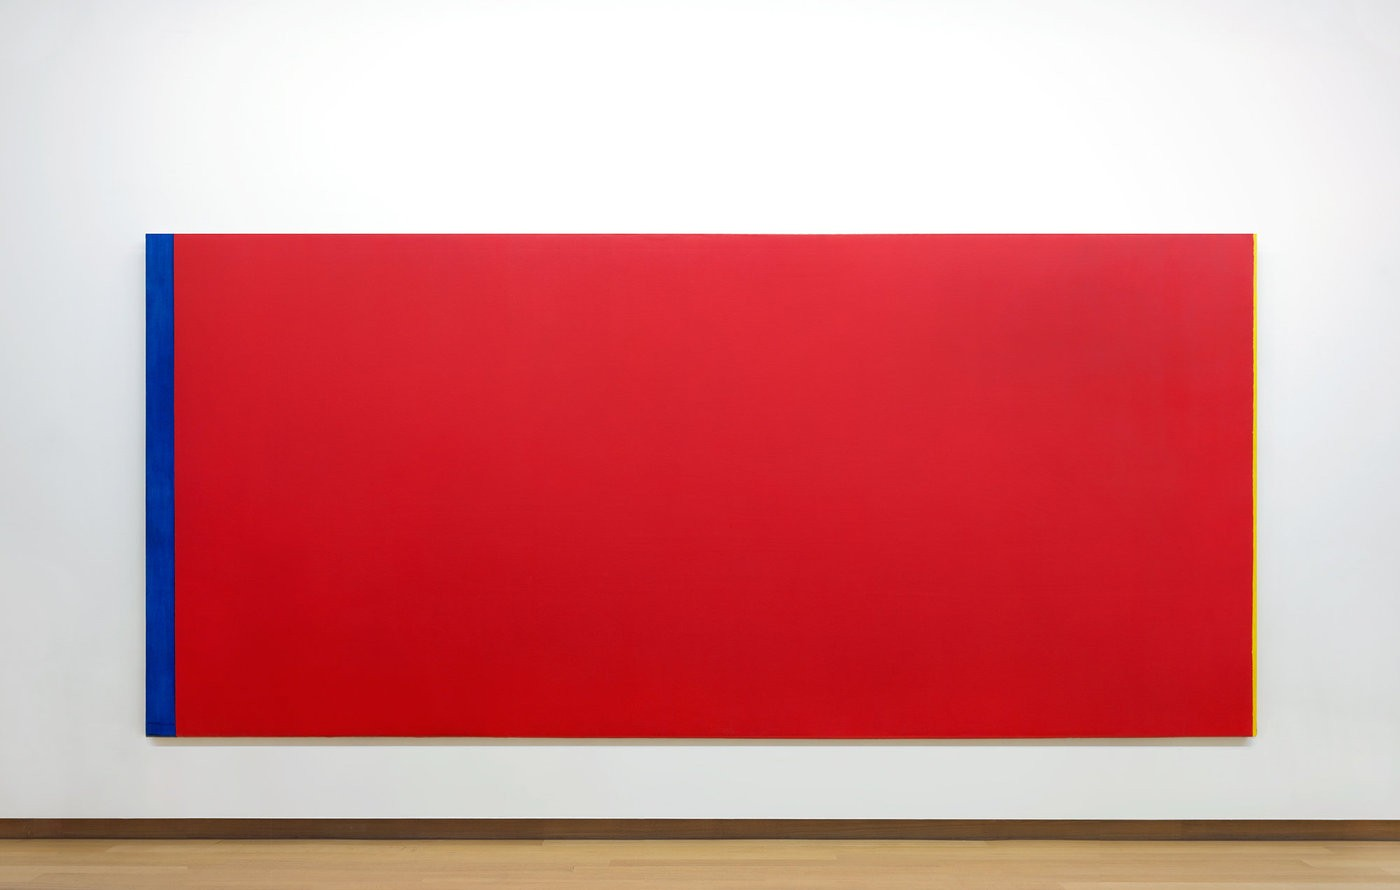 Medium barnett 20newman. 20who s 20afraid 20of 20red 2c 20yellow 20and 20blue 20iii 2c 201967 1968. 20collectie 20stedelijk 20museum 20amsterdam